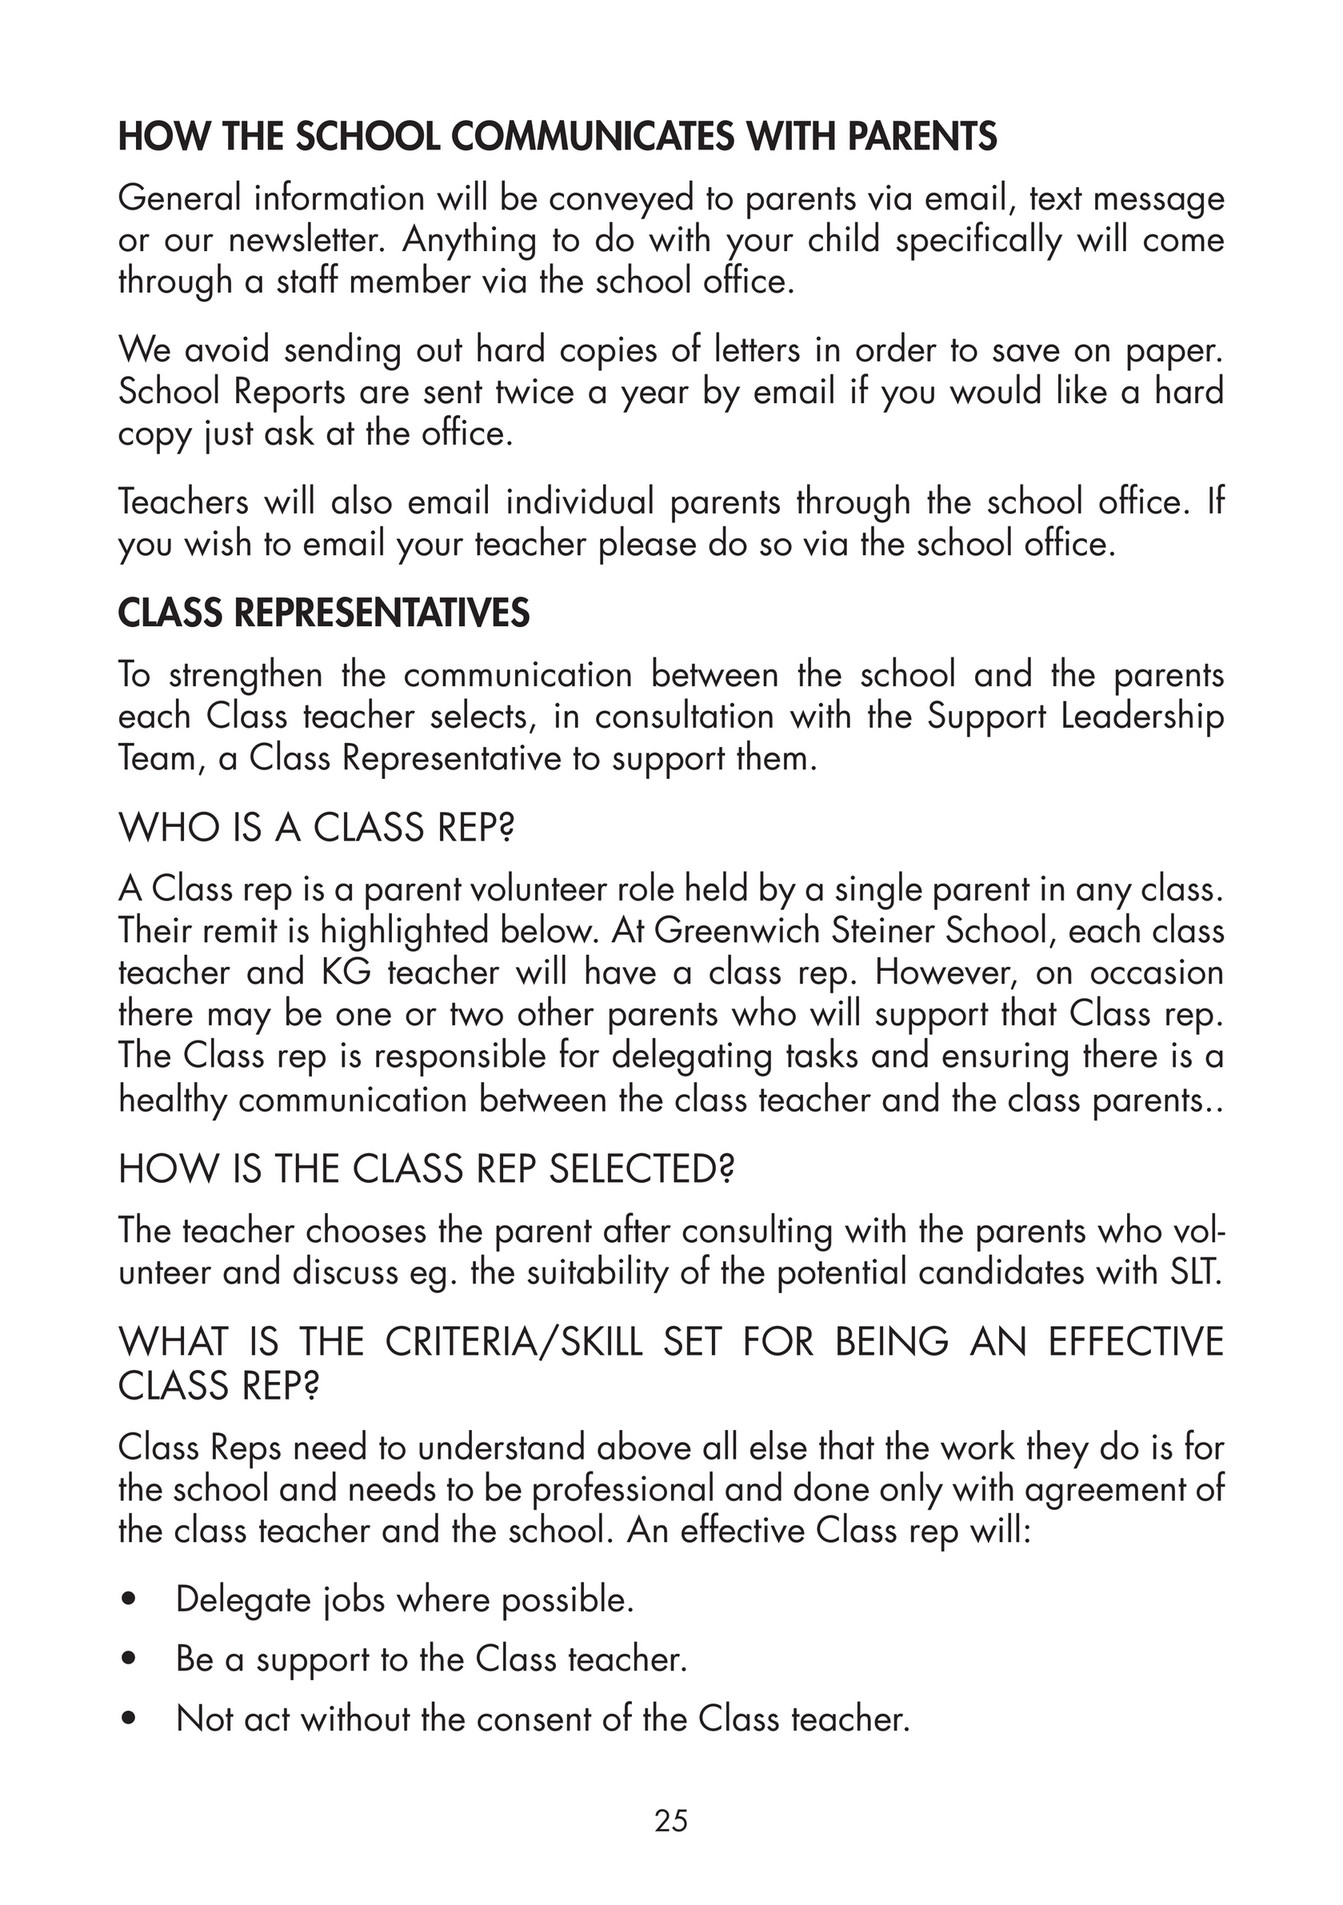 greenwich steiner school gss parents handbook 2016 17 page 24 the class teacher and the school an effective class rep will delegate jobs where possible be a support to the class teacher